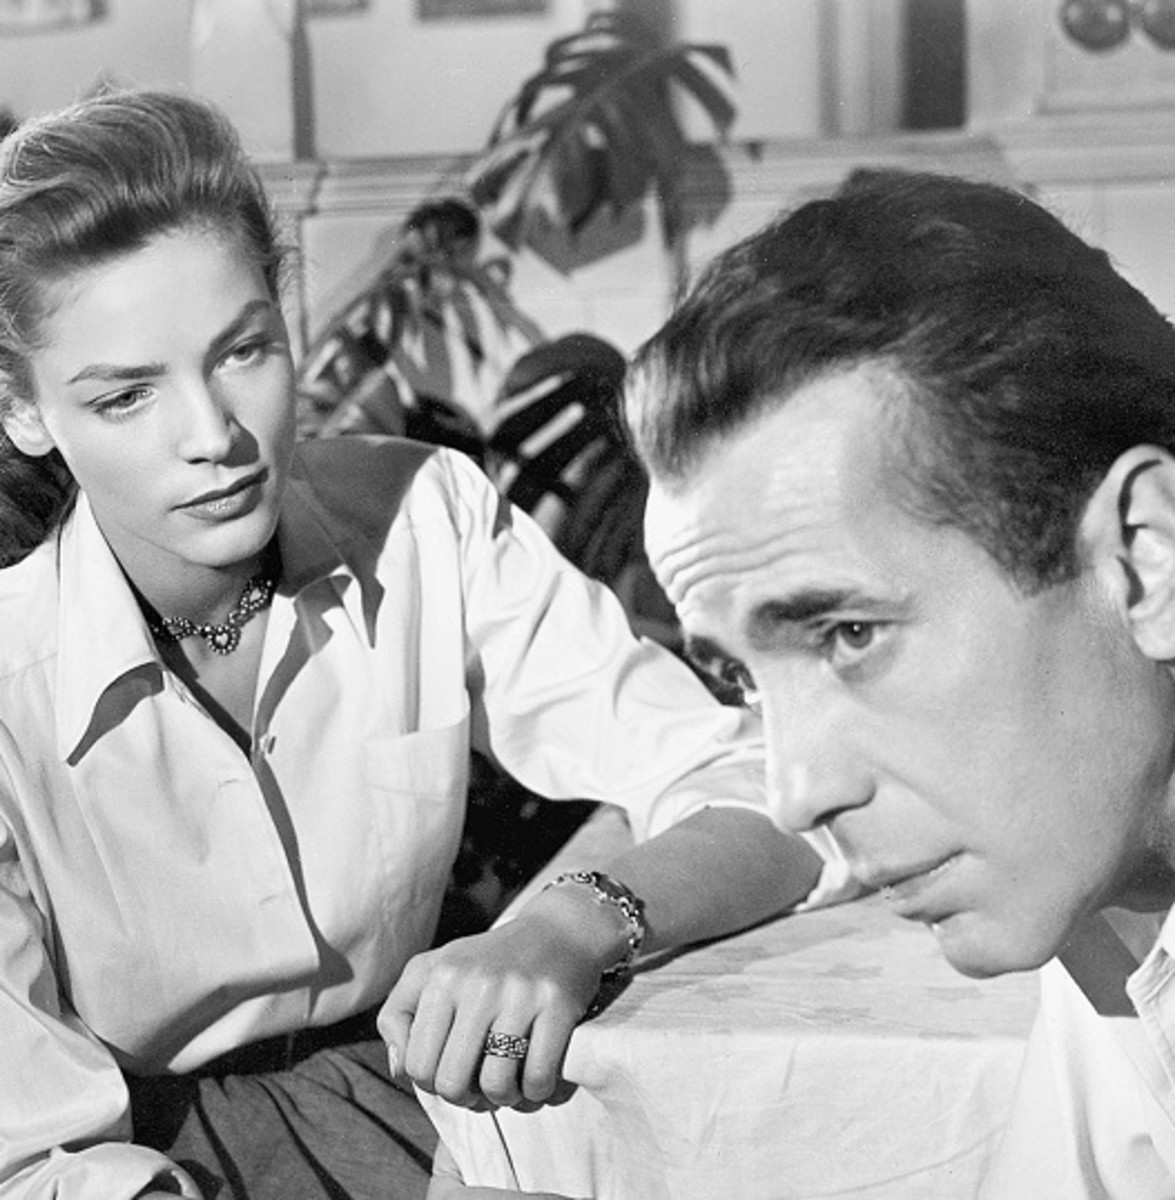 Lauren Bacall and Humphrey Bogart in Key Largo (1948)